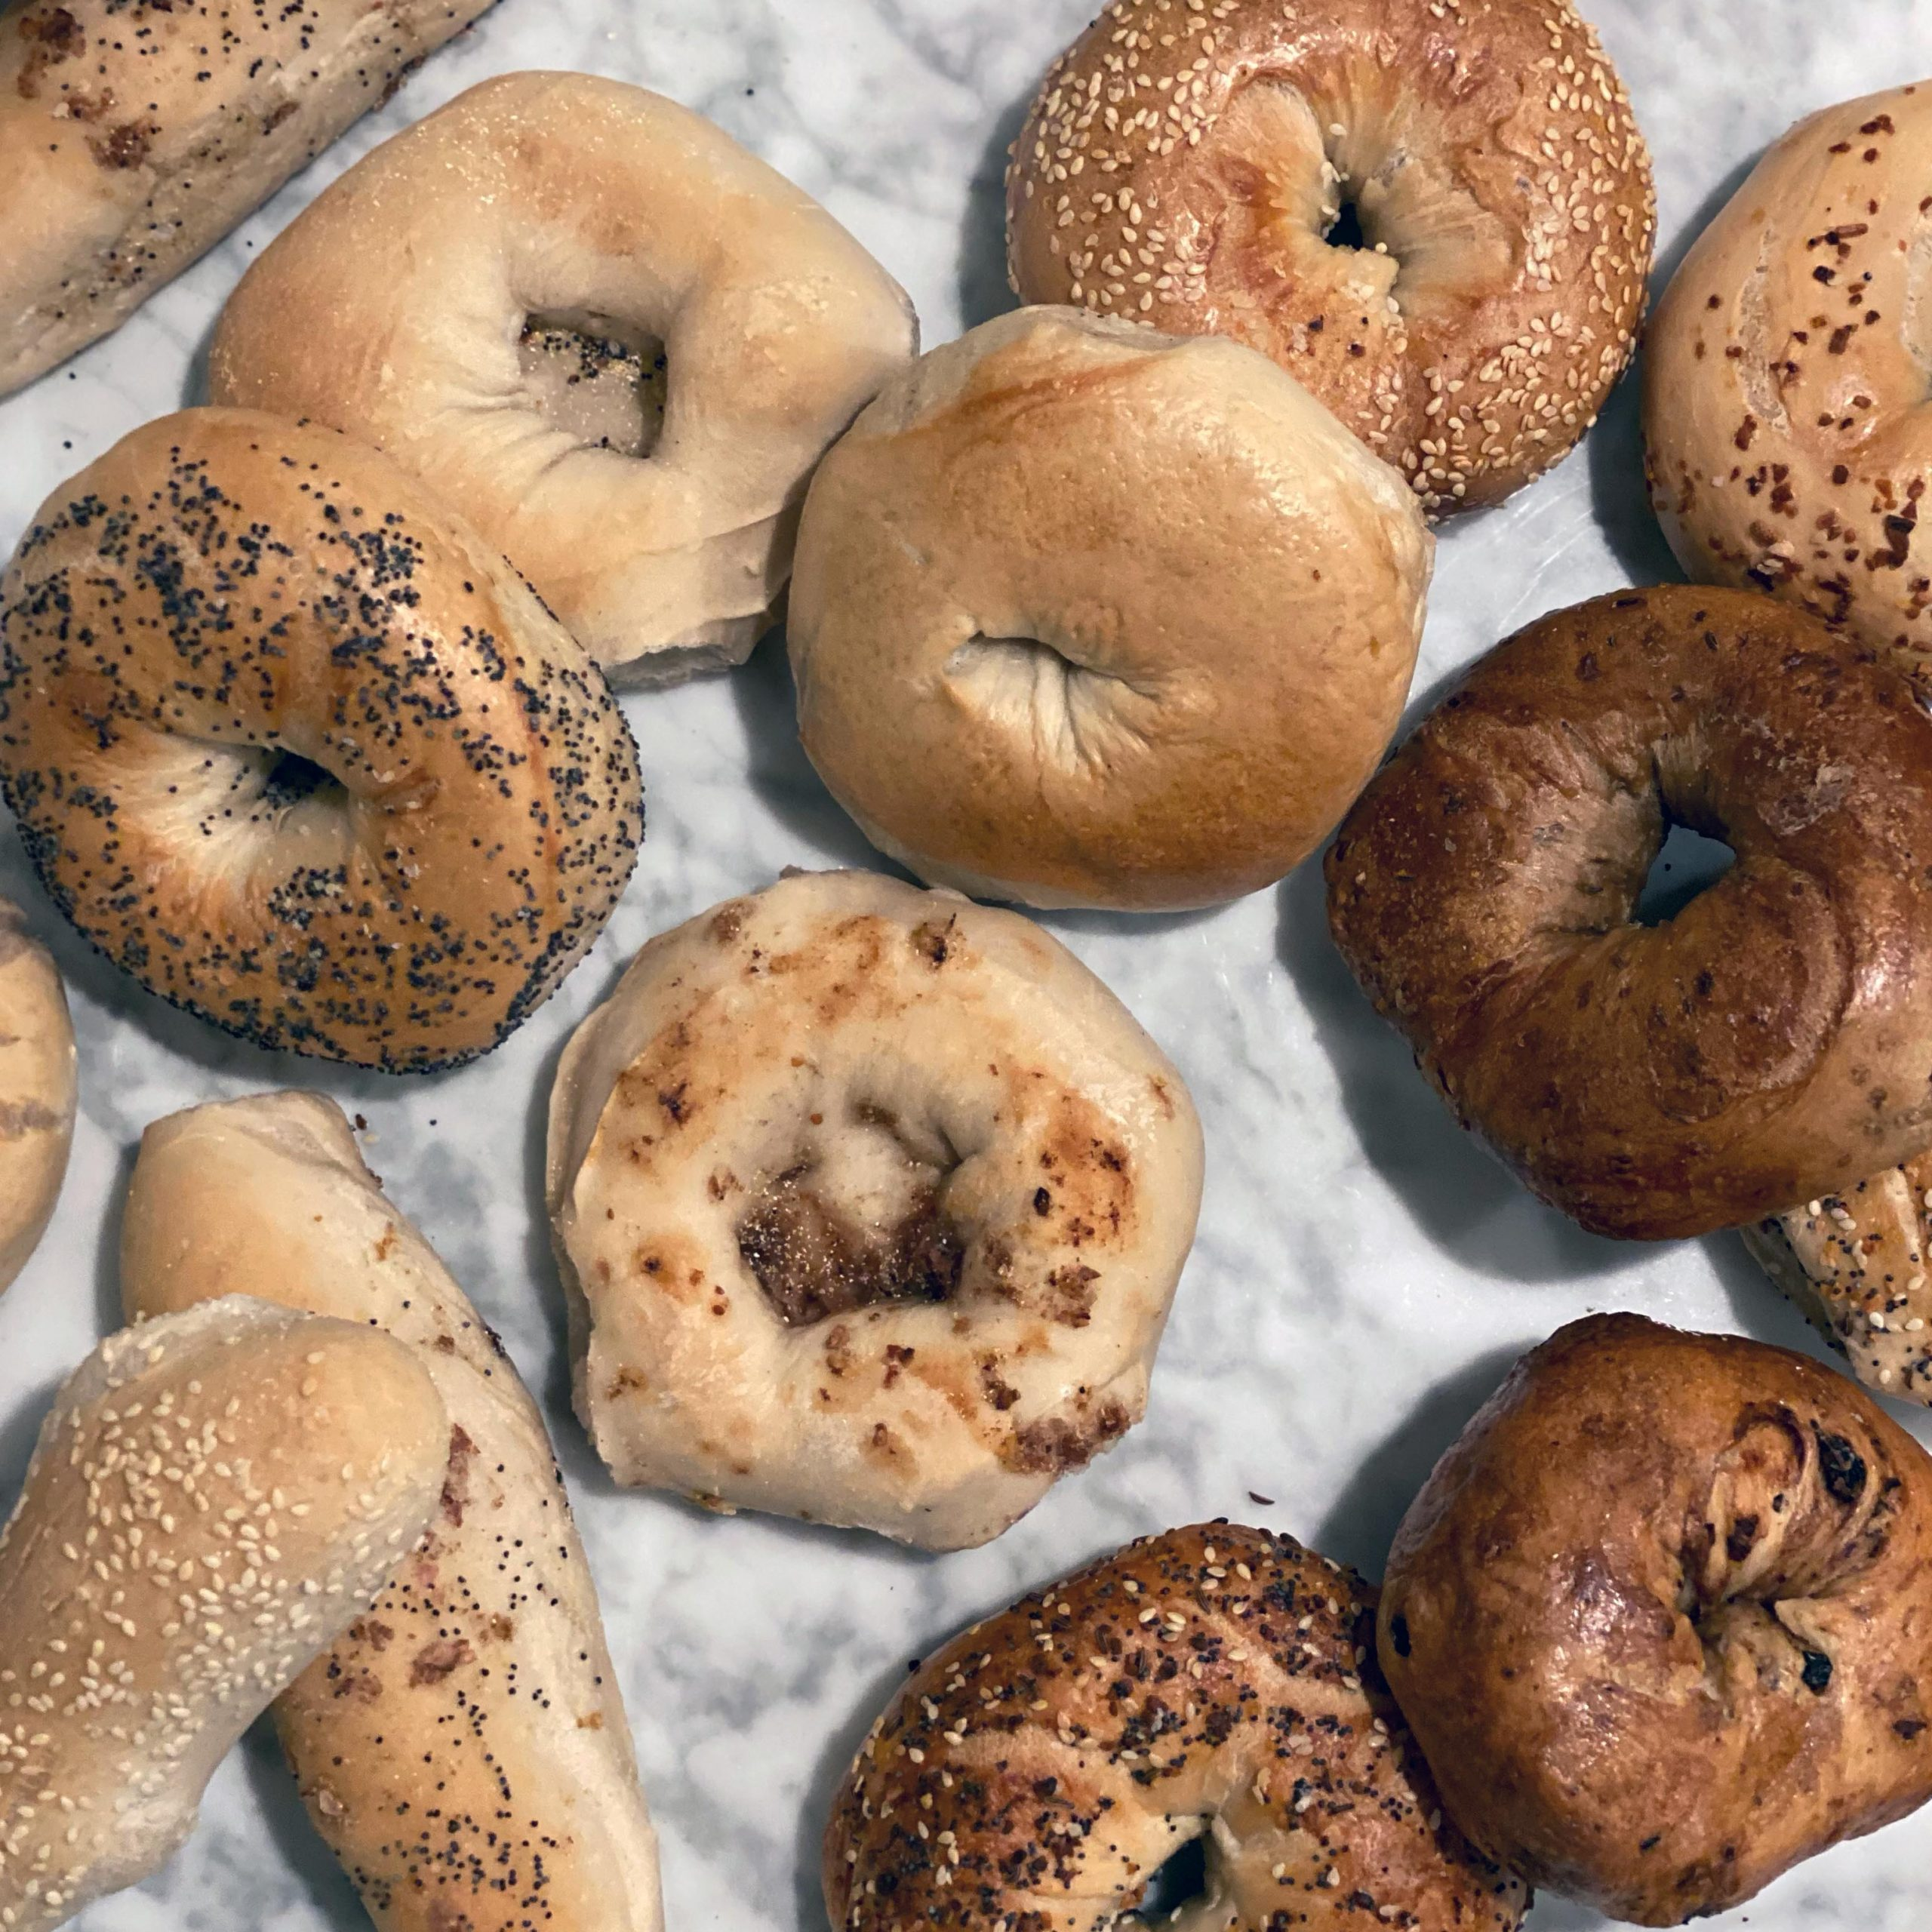 New York Bagel & Bialy Bagels 2